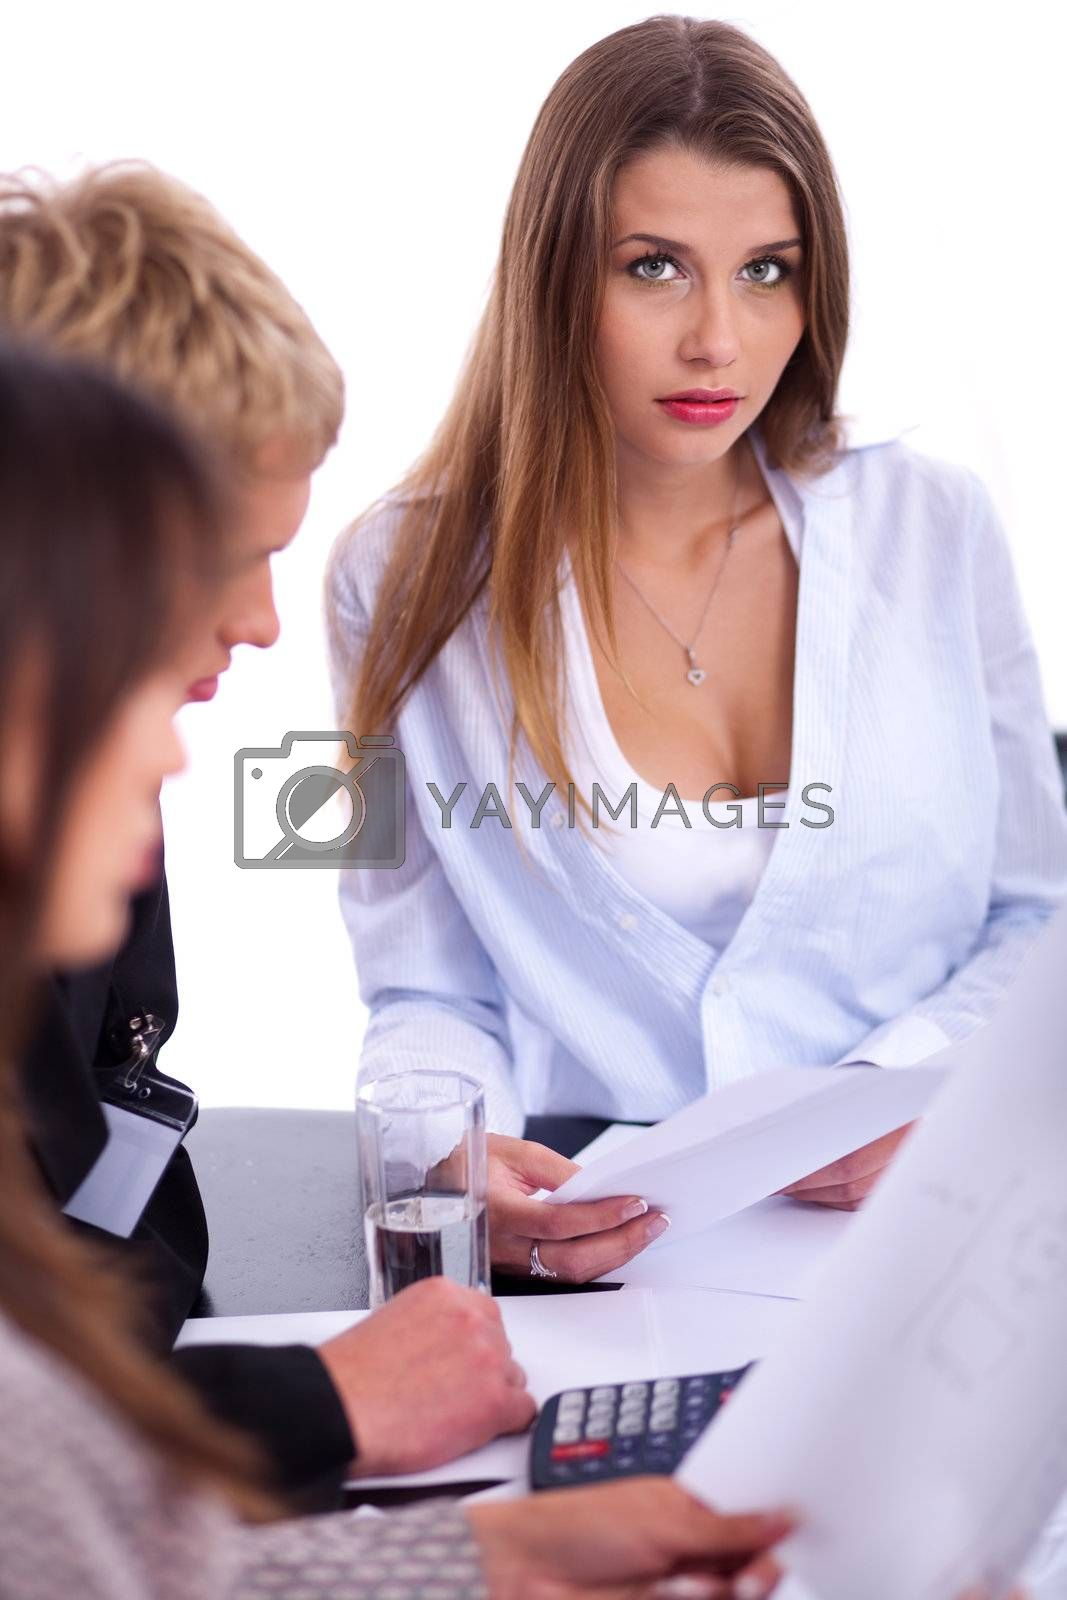 Businesswoman looking at camera while attending business meeting with her colleagues